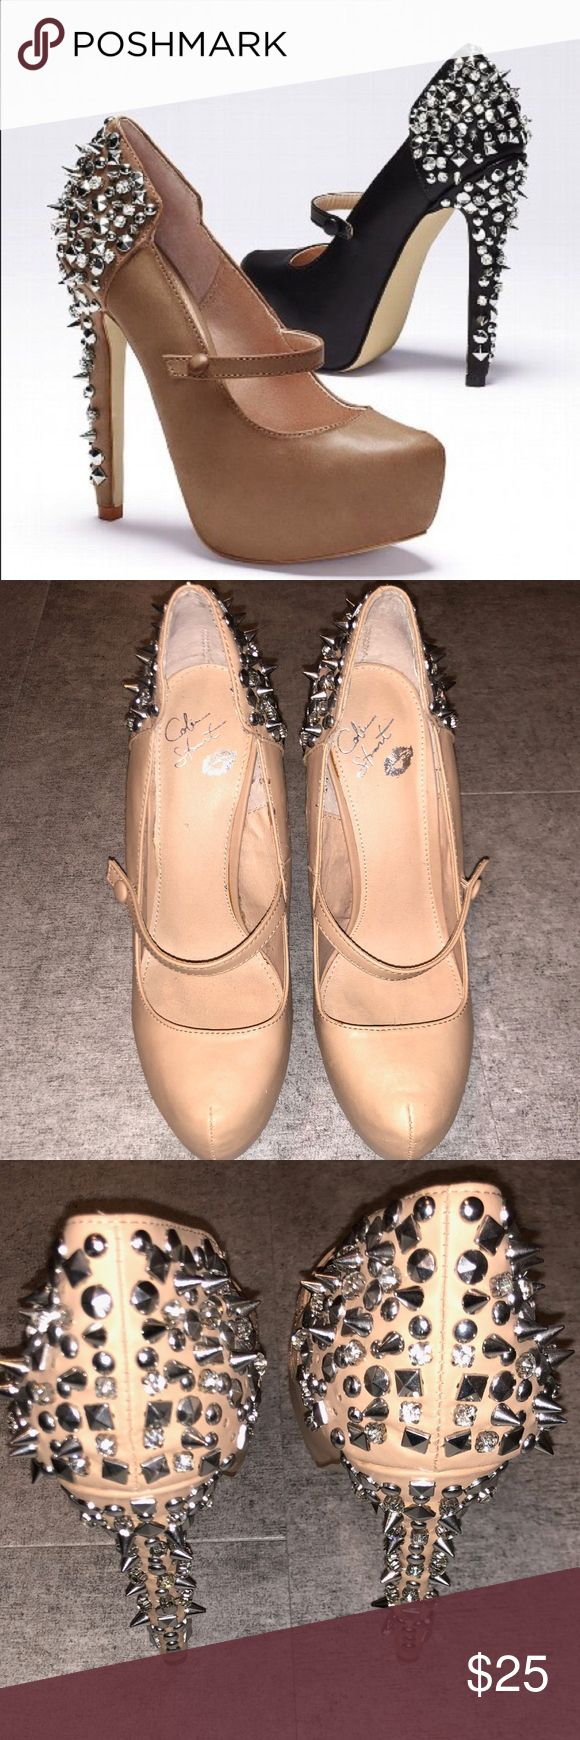 Colin Stuart Mary Jane Nude Studded Heels 8.5 BRAND: Colin Stuart purchased through Victoria's Secret  SIZE: 8.5 CONDITION: Used once. Some studs are missing. Please see photos  Leather heels with studs and spikes. Colin Stuart Shoes Heels